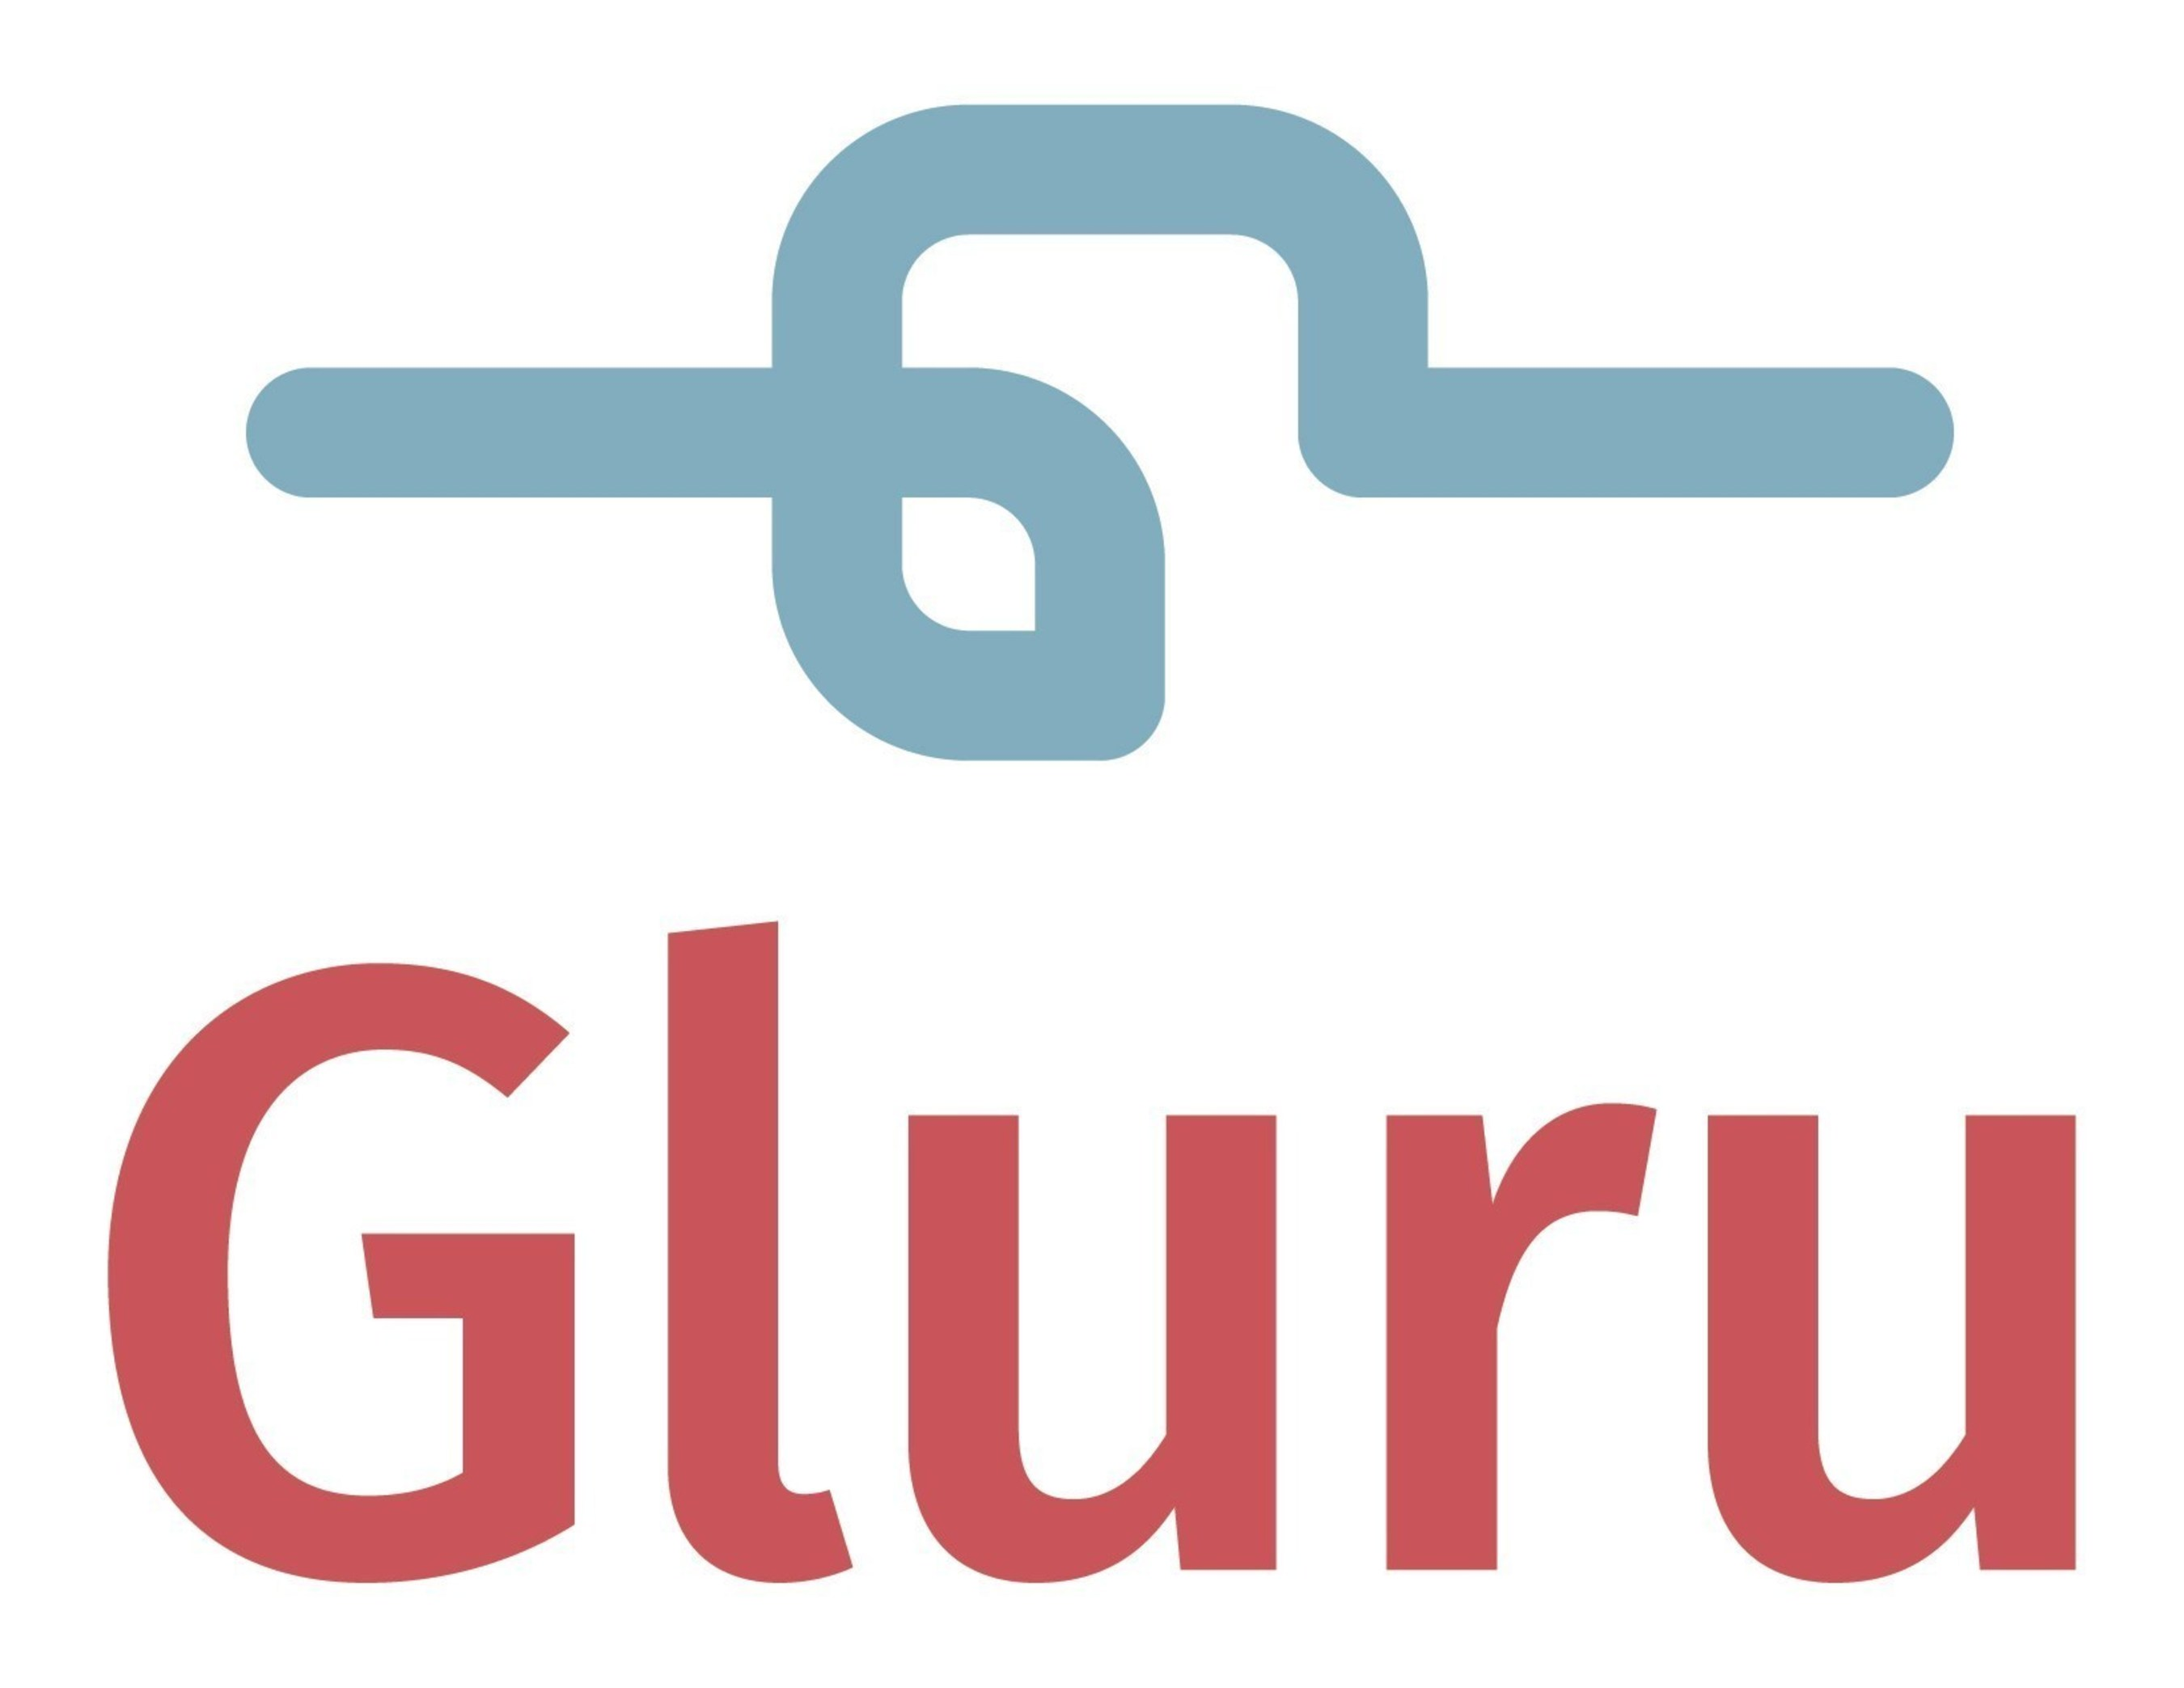 Gluru Launches New Predictive App For Web and Android, Offering a Smarter Personal Assistant to Organize Your Daily Workflow